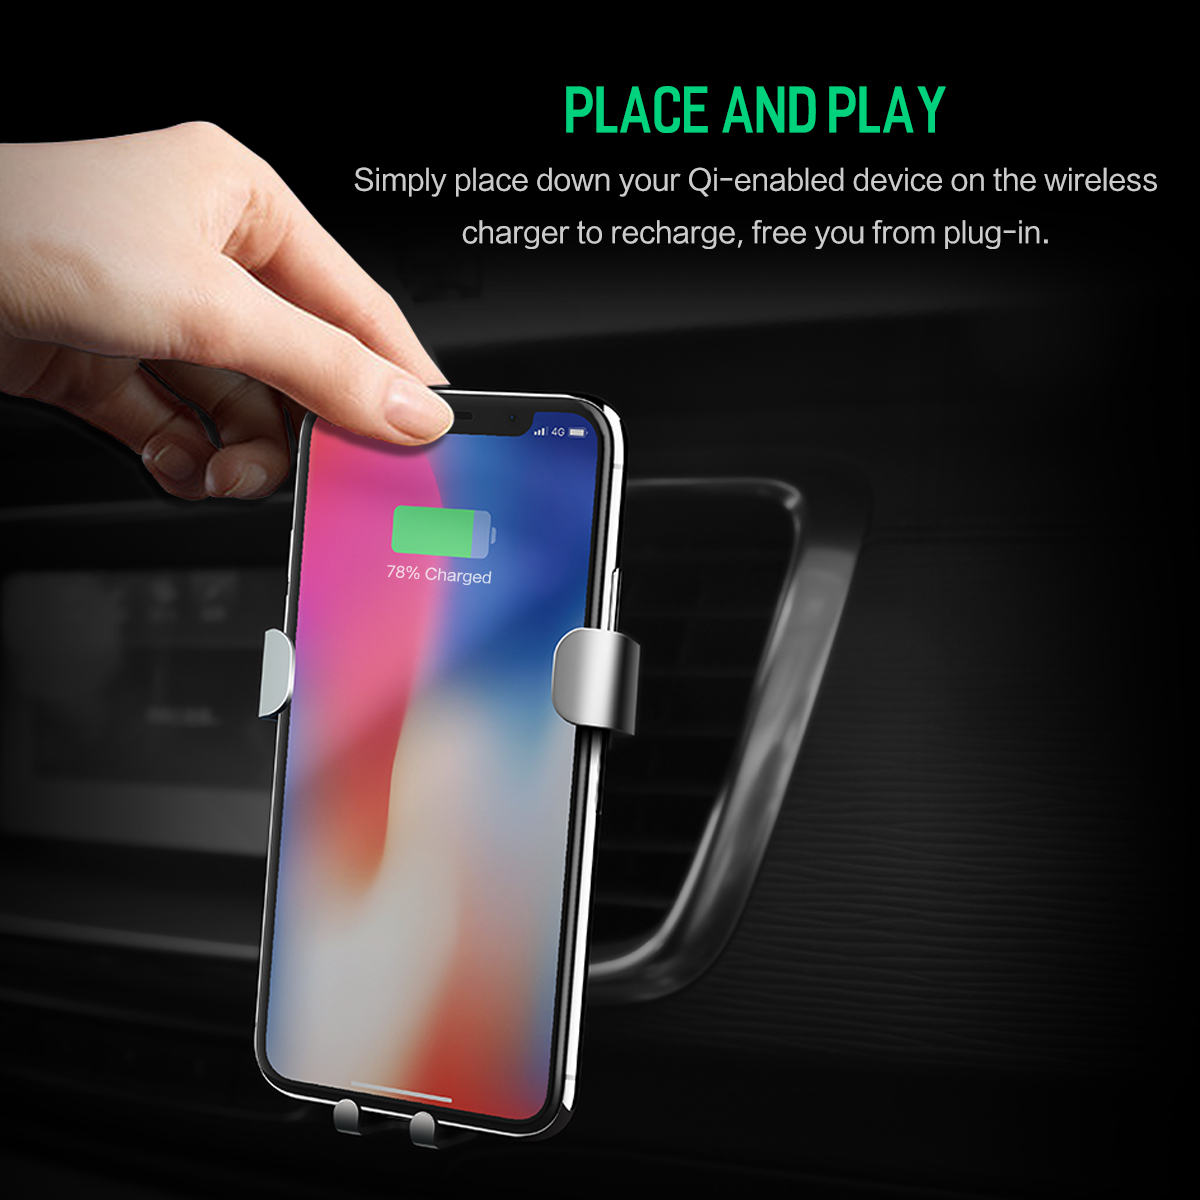 HTB1U3ZjvAZmBKNjSZPiq6xFNVXaf - 10W QI Wireless Car Charger Gravity Holder , ROCK for iPhone X 8 Plus Samsung Galaxy S8 S7 Note 8 Quick Charge Charging Stand